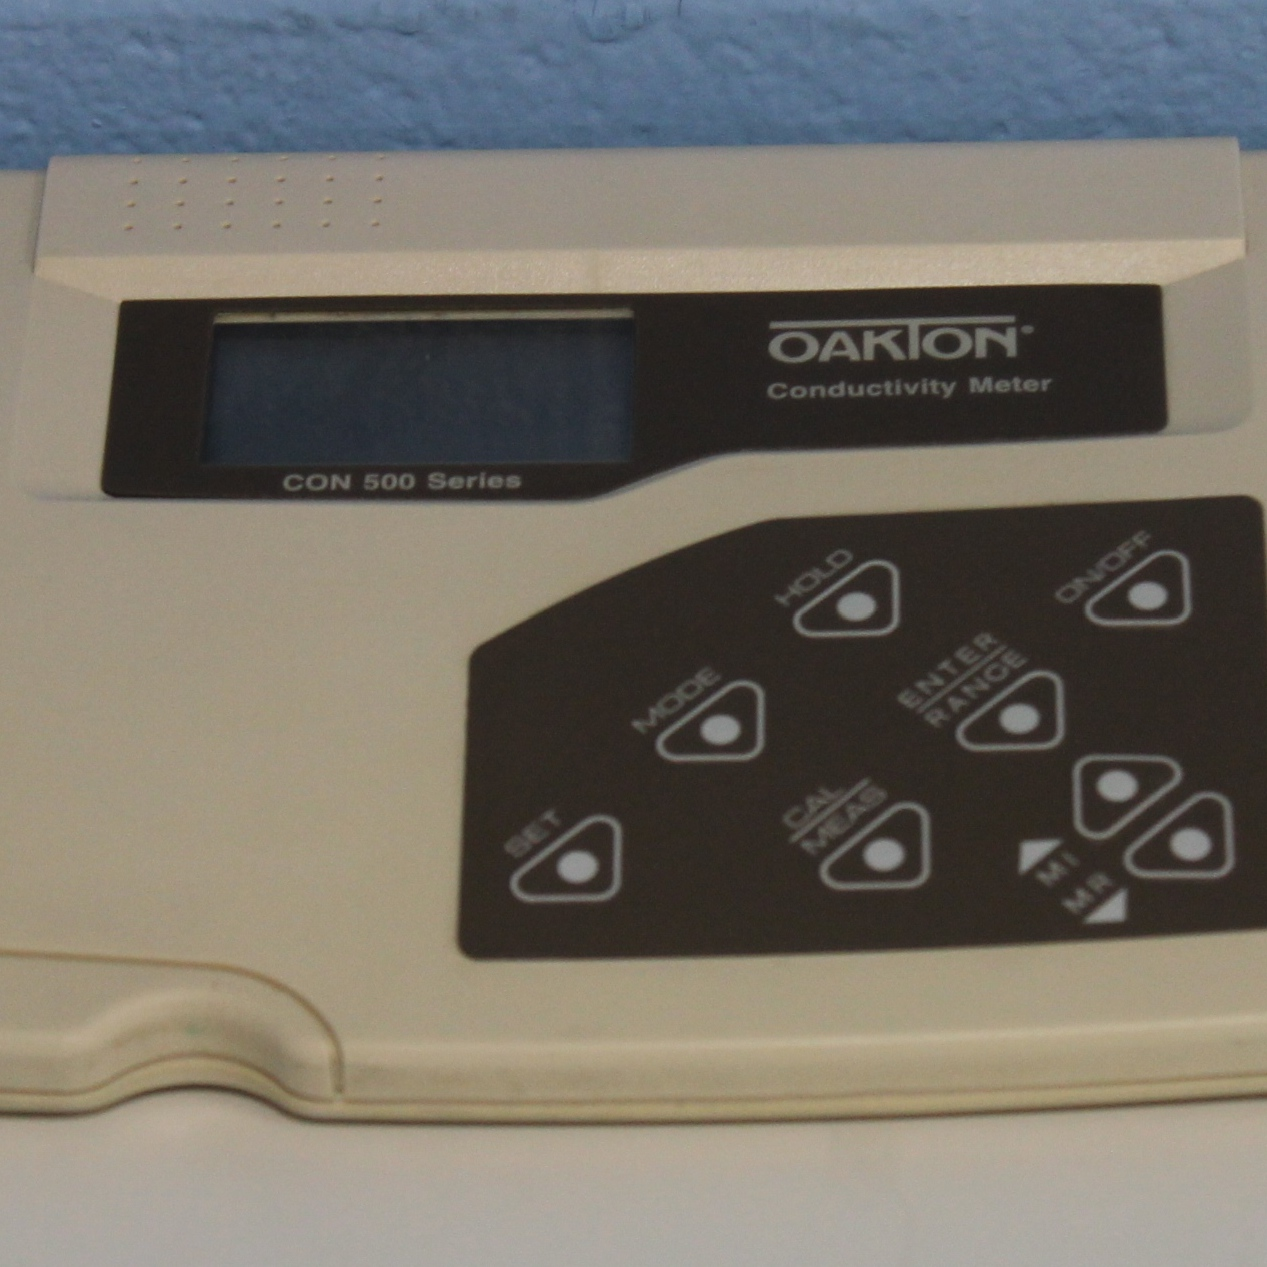 CON 500 Benchtop Conductivity Meter Name